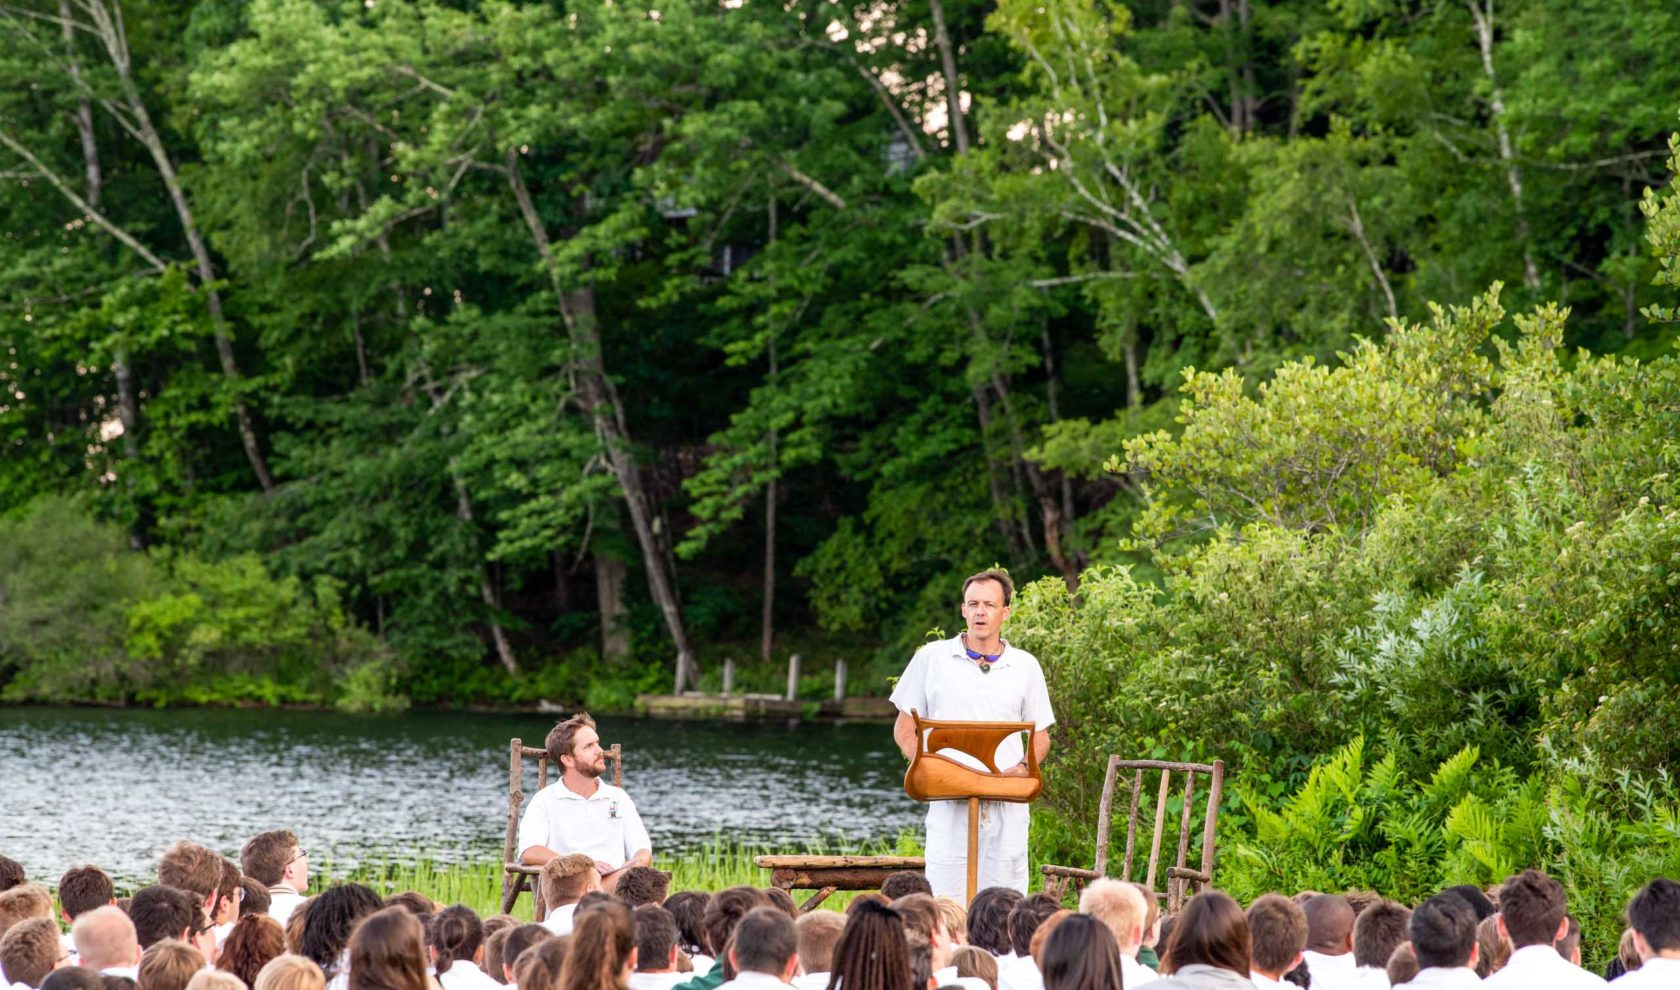 A staff member speaking at an assembly.